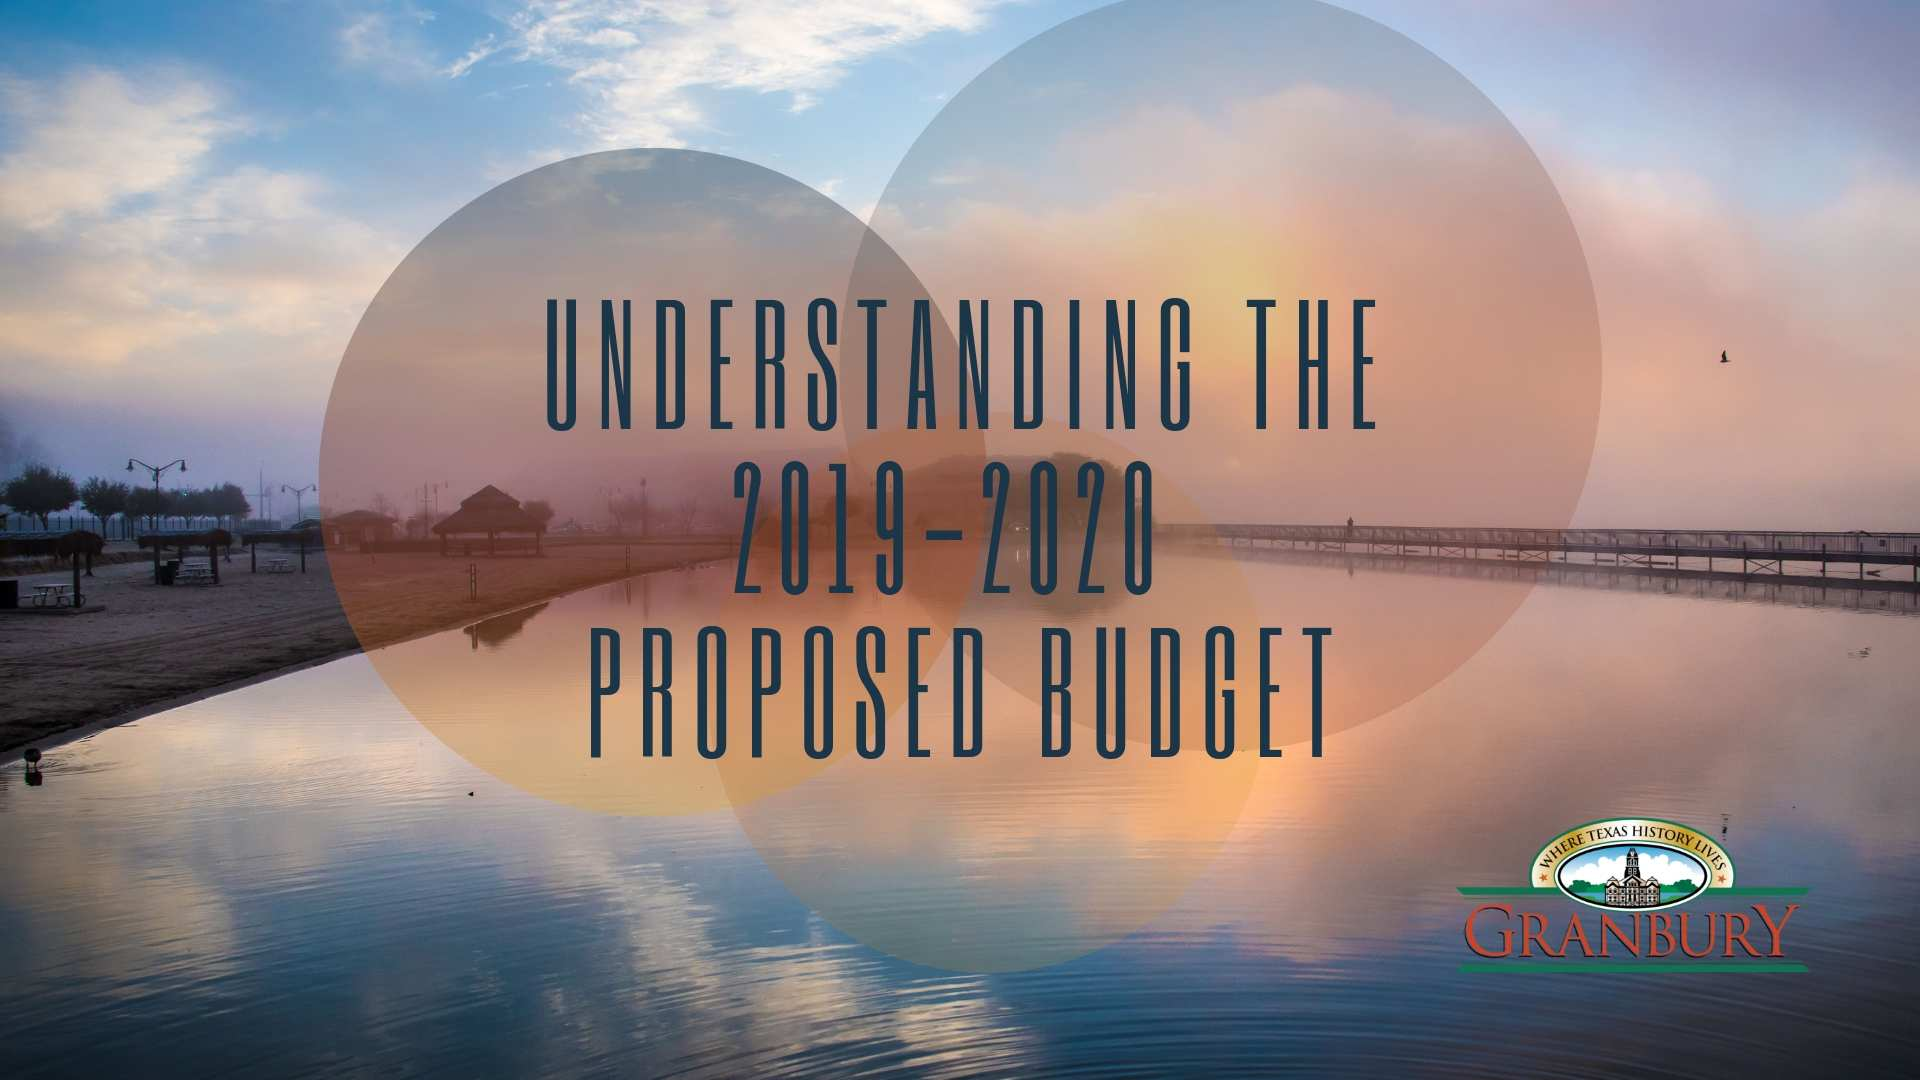 Proposed Budget Video Graphic